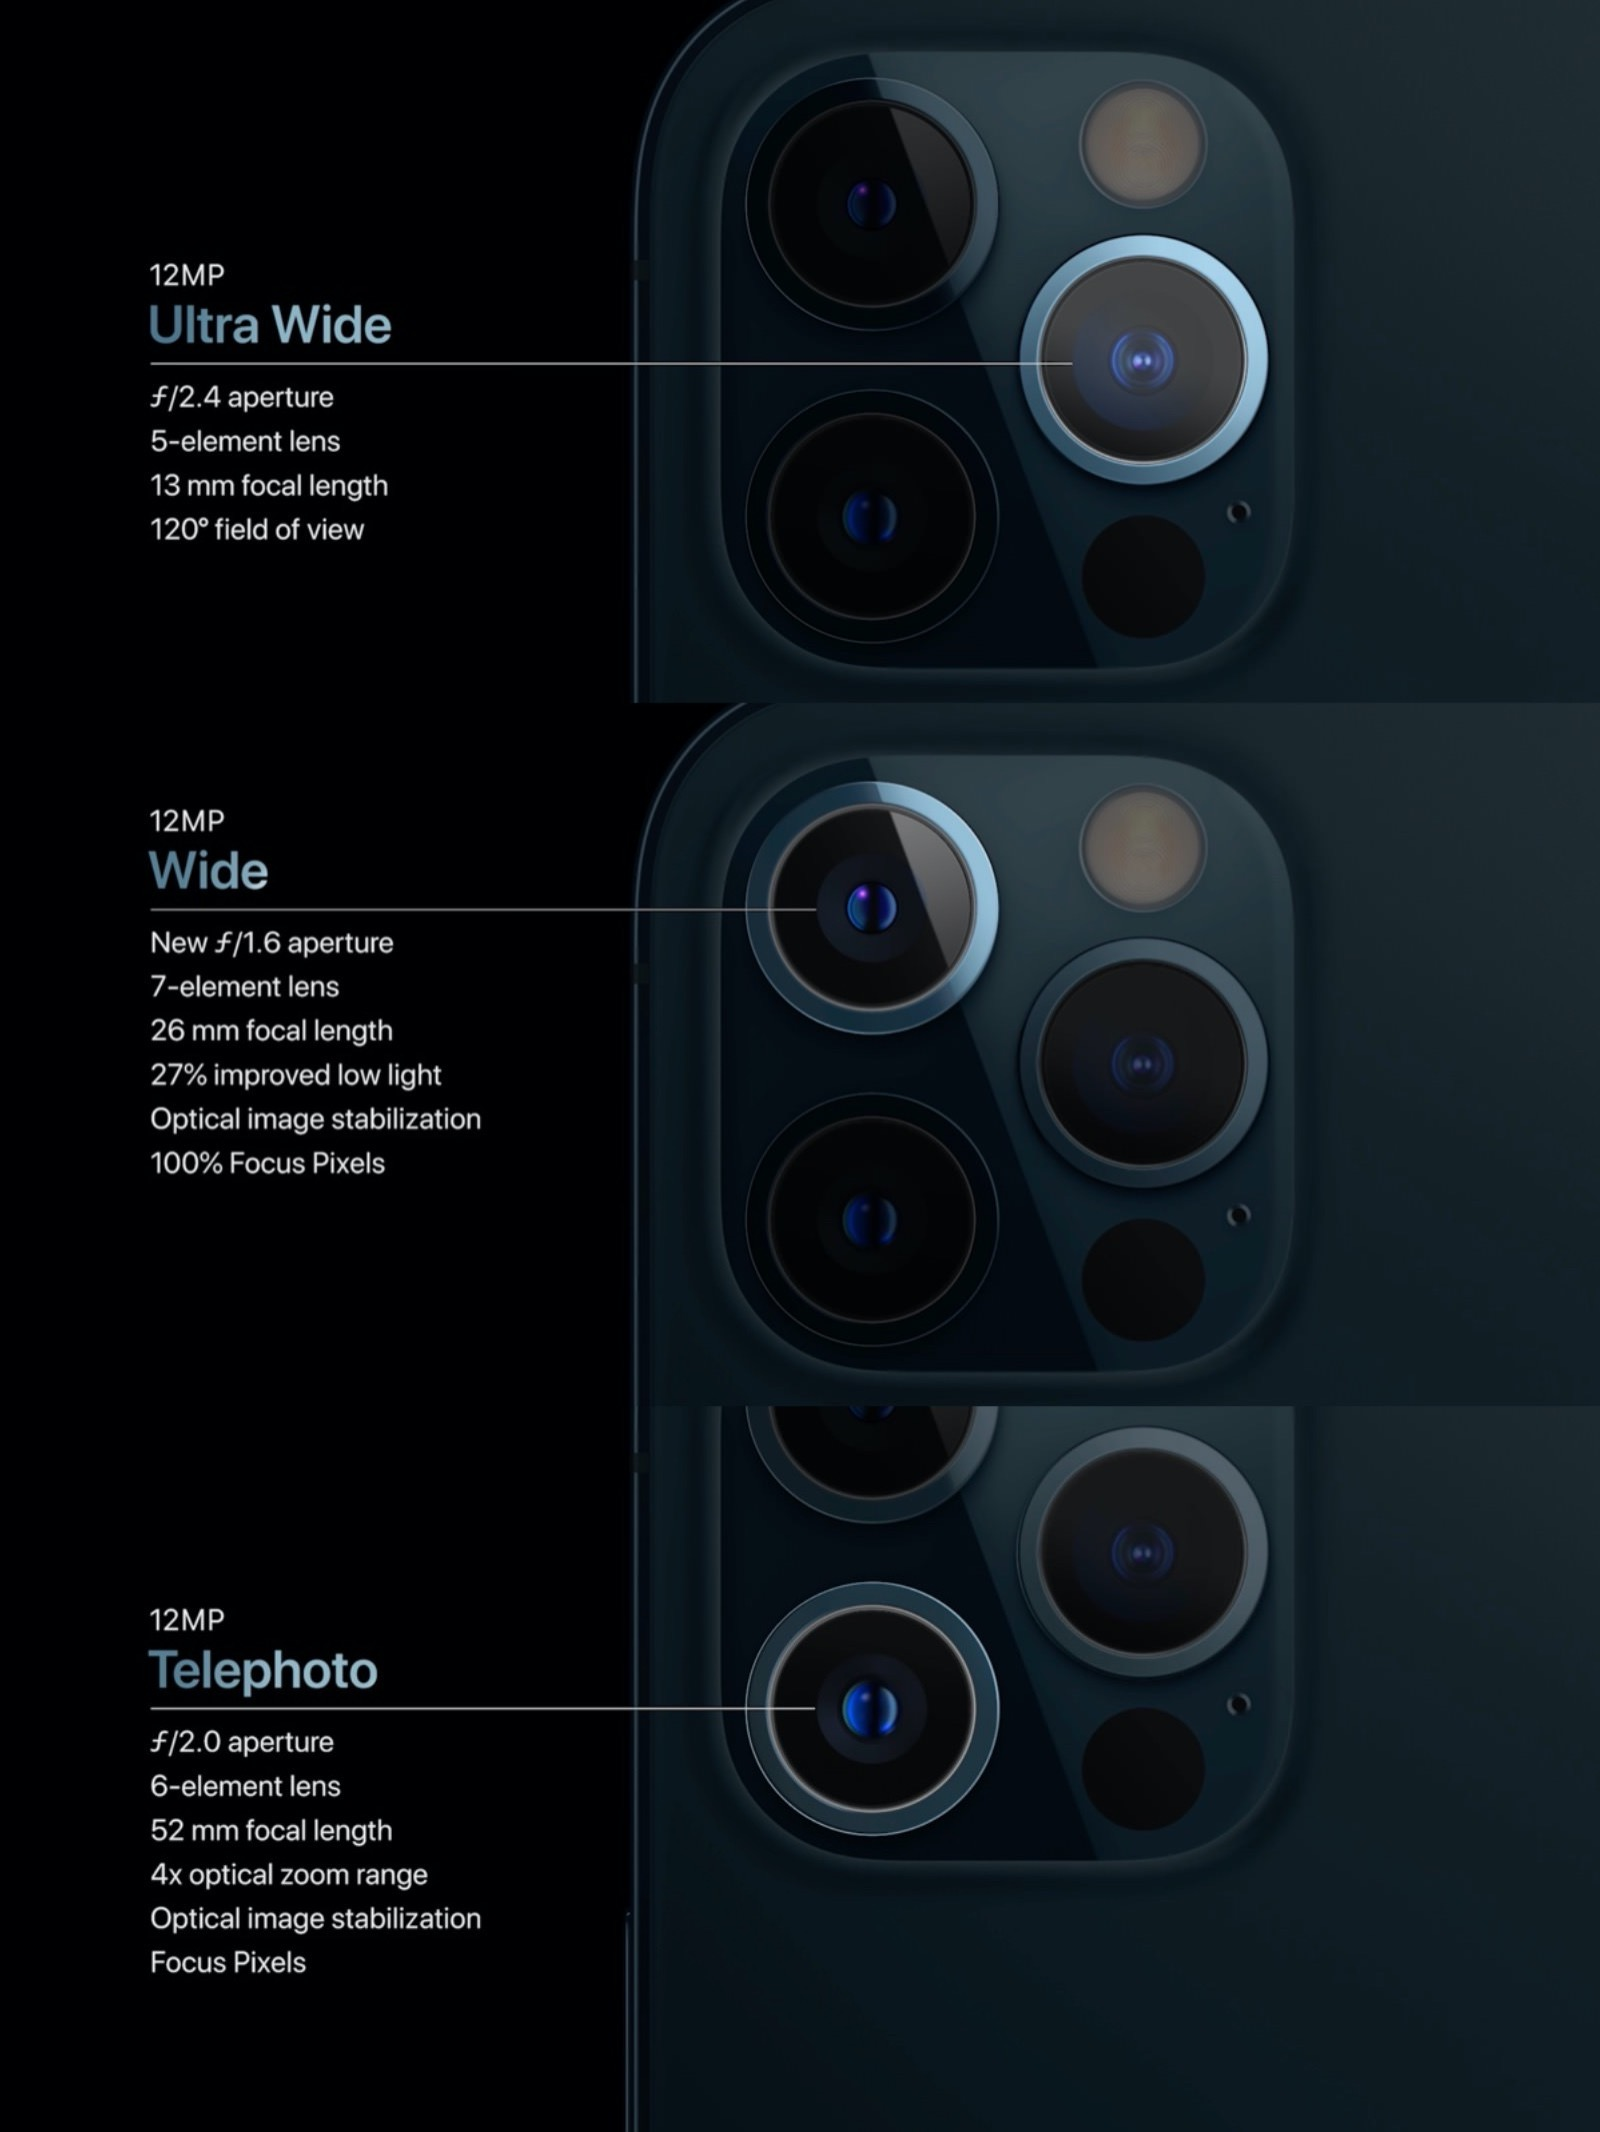 Iphone12pro camera lens specs